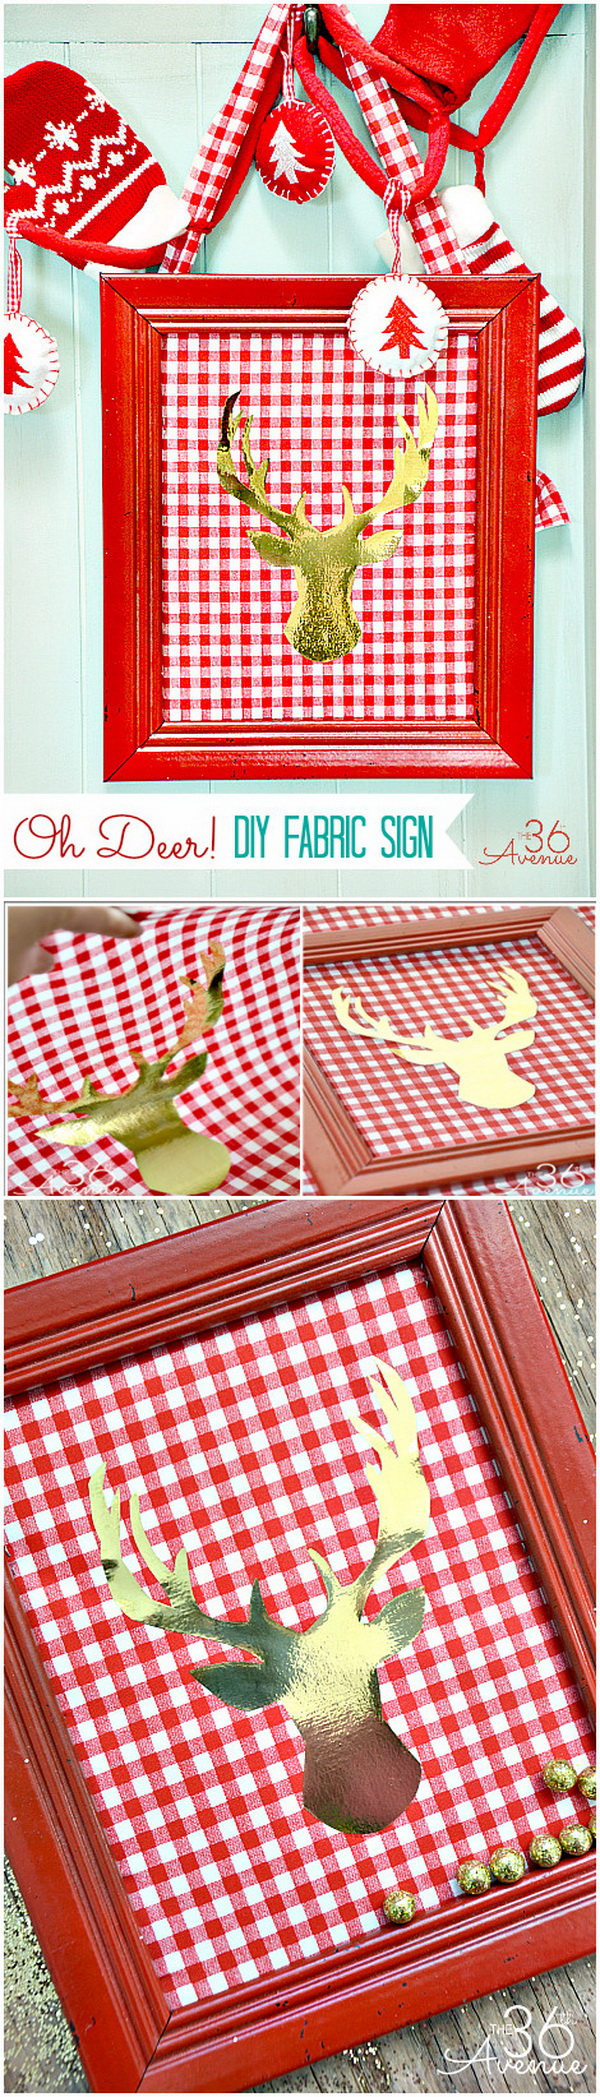 DIY Fabric Deer Head Christmas Sign. Bring the festive spirit into your home by creating this Christmas canvas sign. Super easy and fun to make in an afternon.